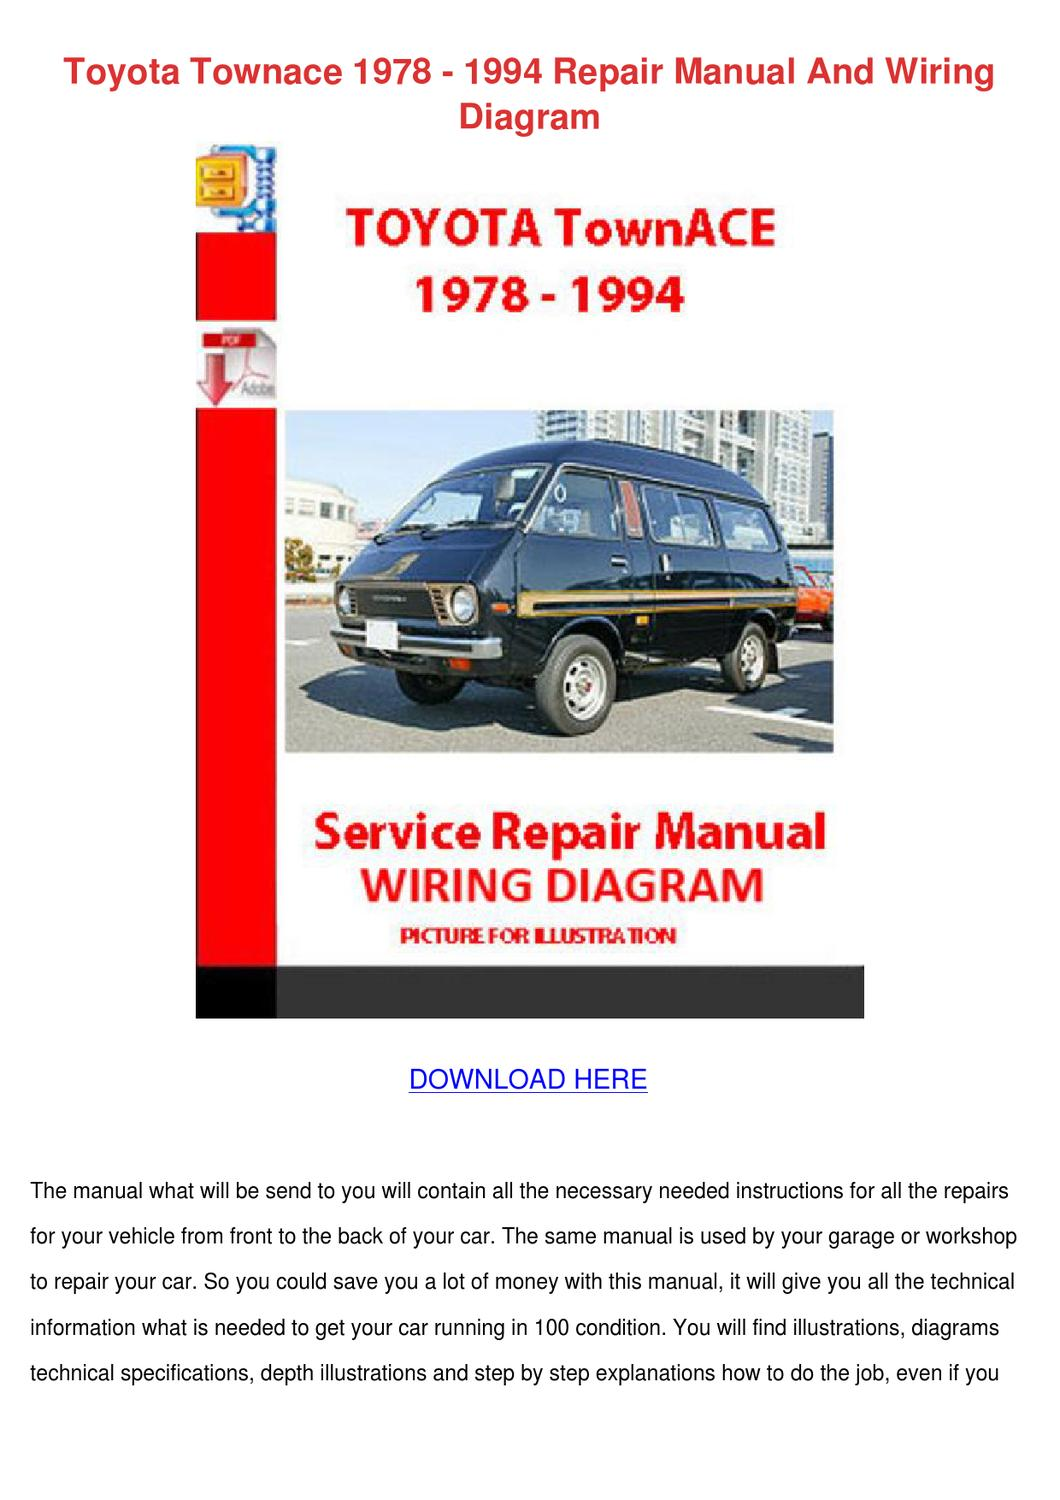 Toyota Townace 1978 1994 Repair Manual And Wi by SantosRogers - issuu